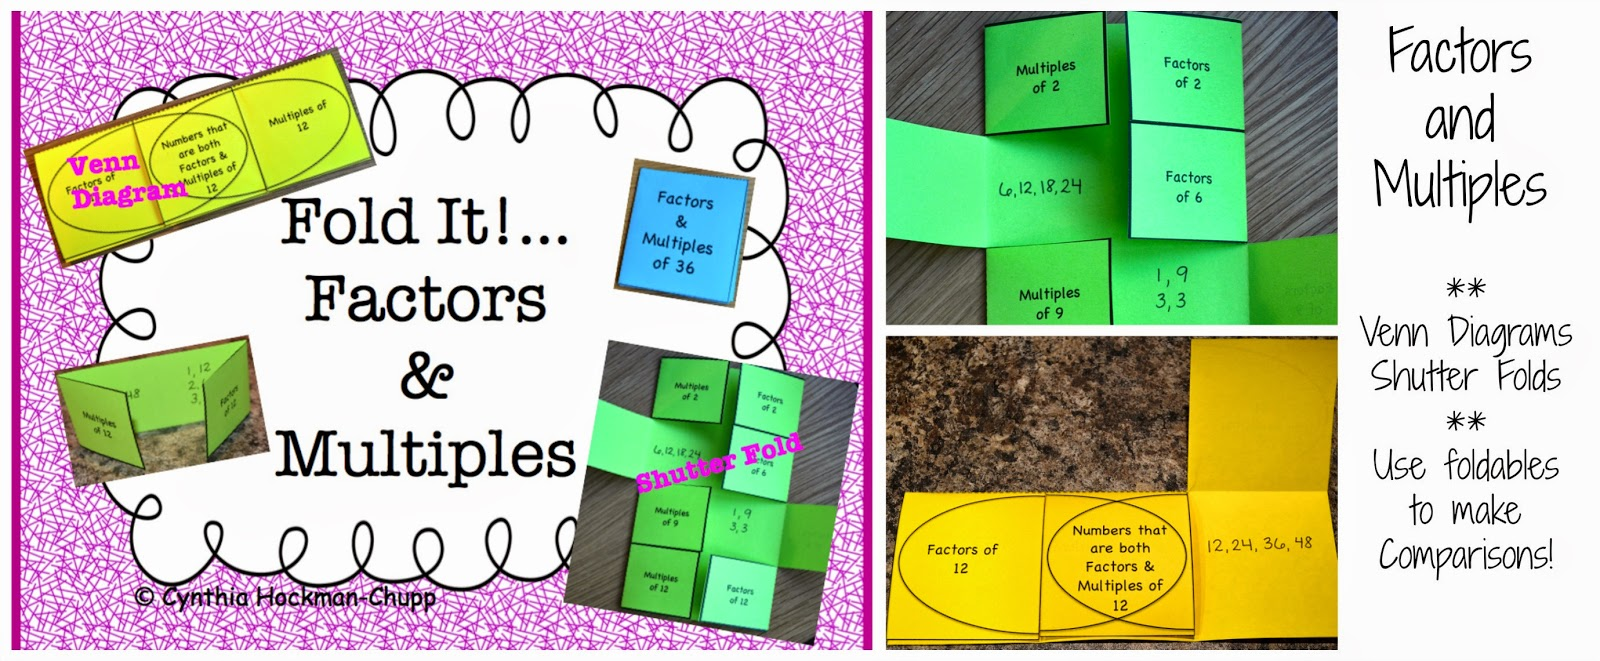 worksheet Multiples And Factors love2learn2day have multiple factor confusion the new set is also available as part of a bundled multiples factors flap pack that includes popular books present factors